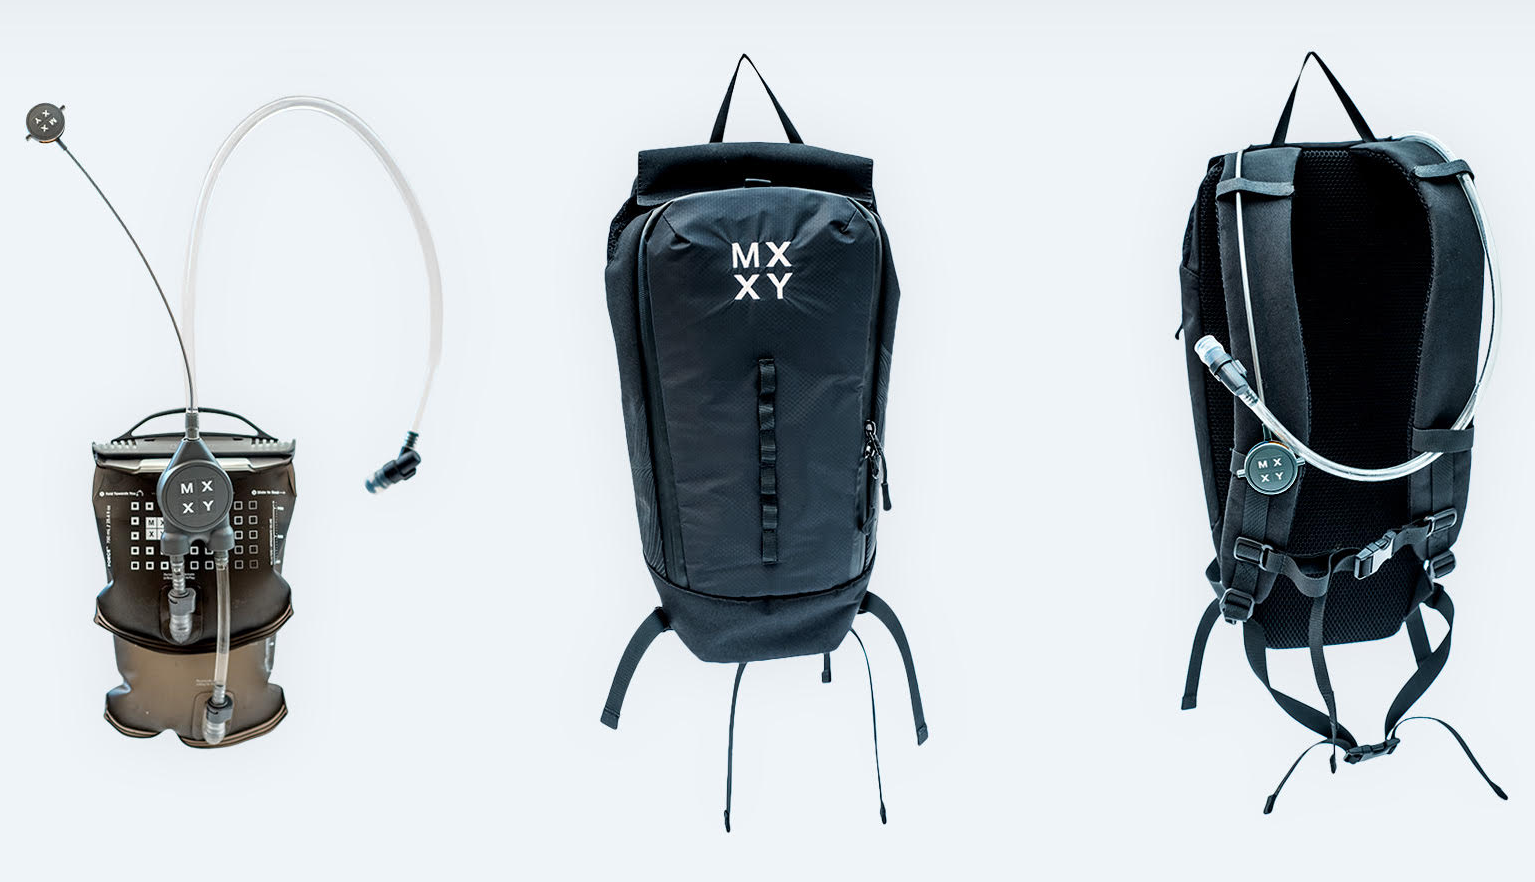 MXXY hydration system and pack